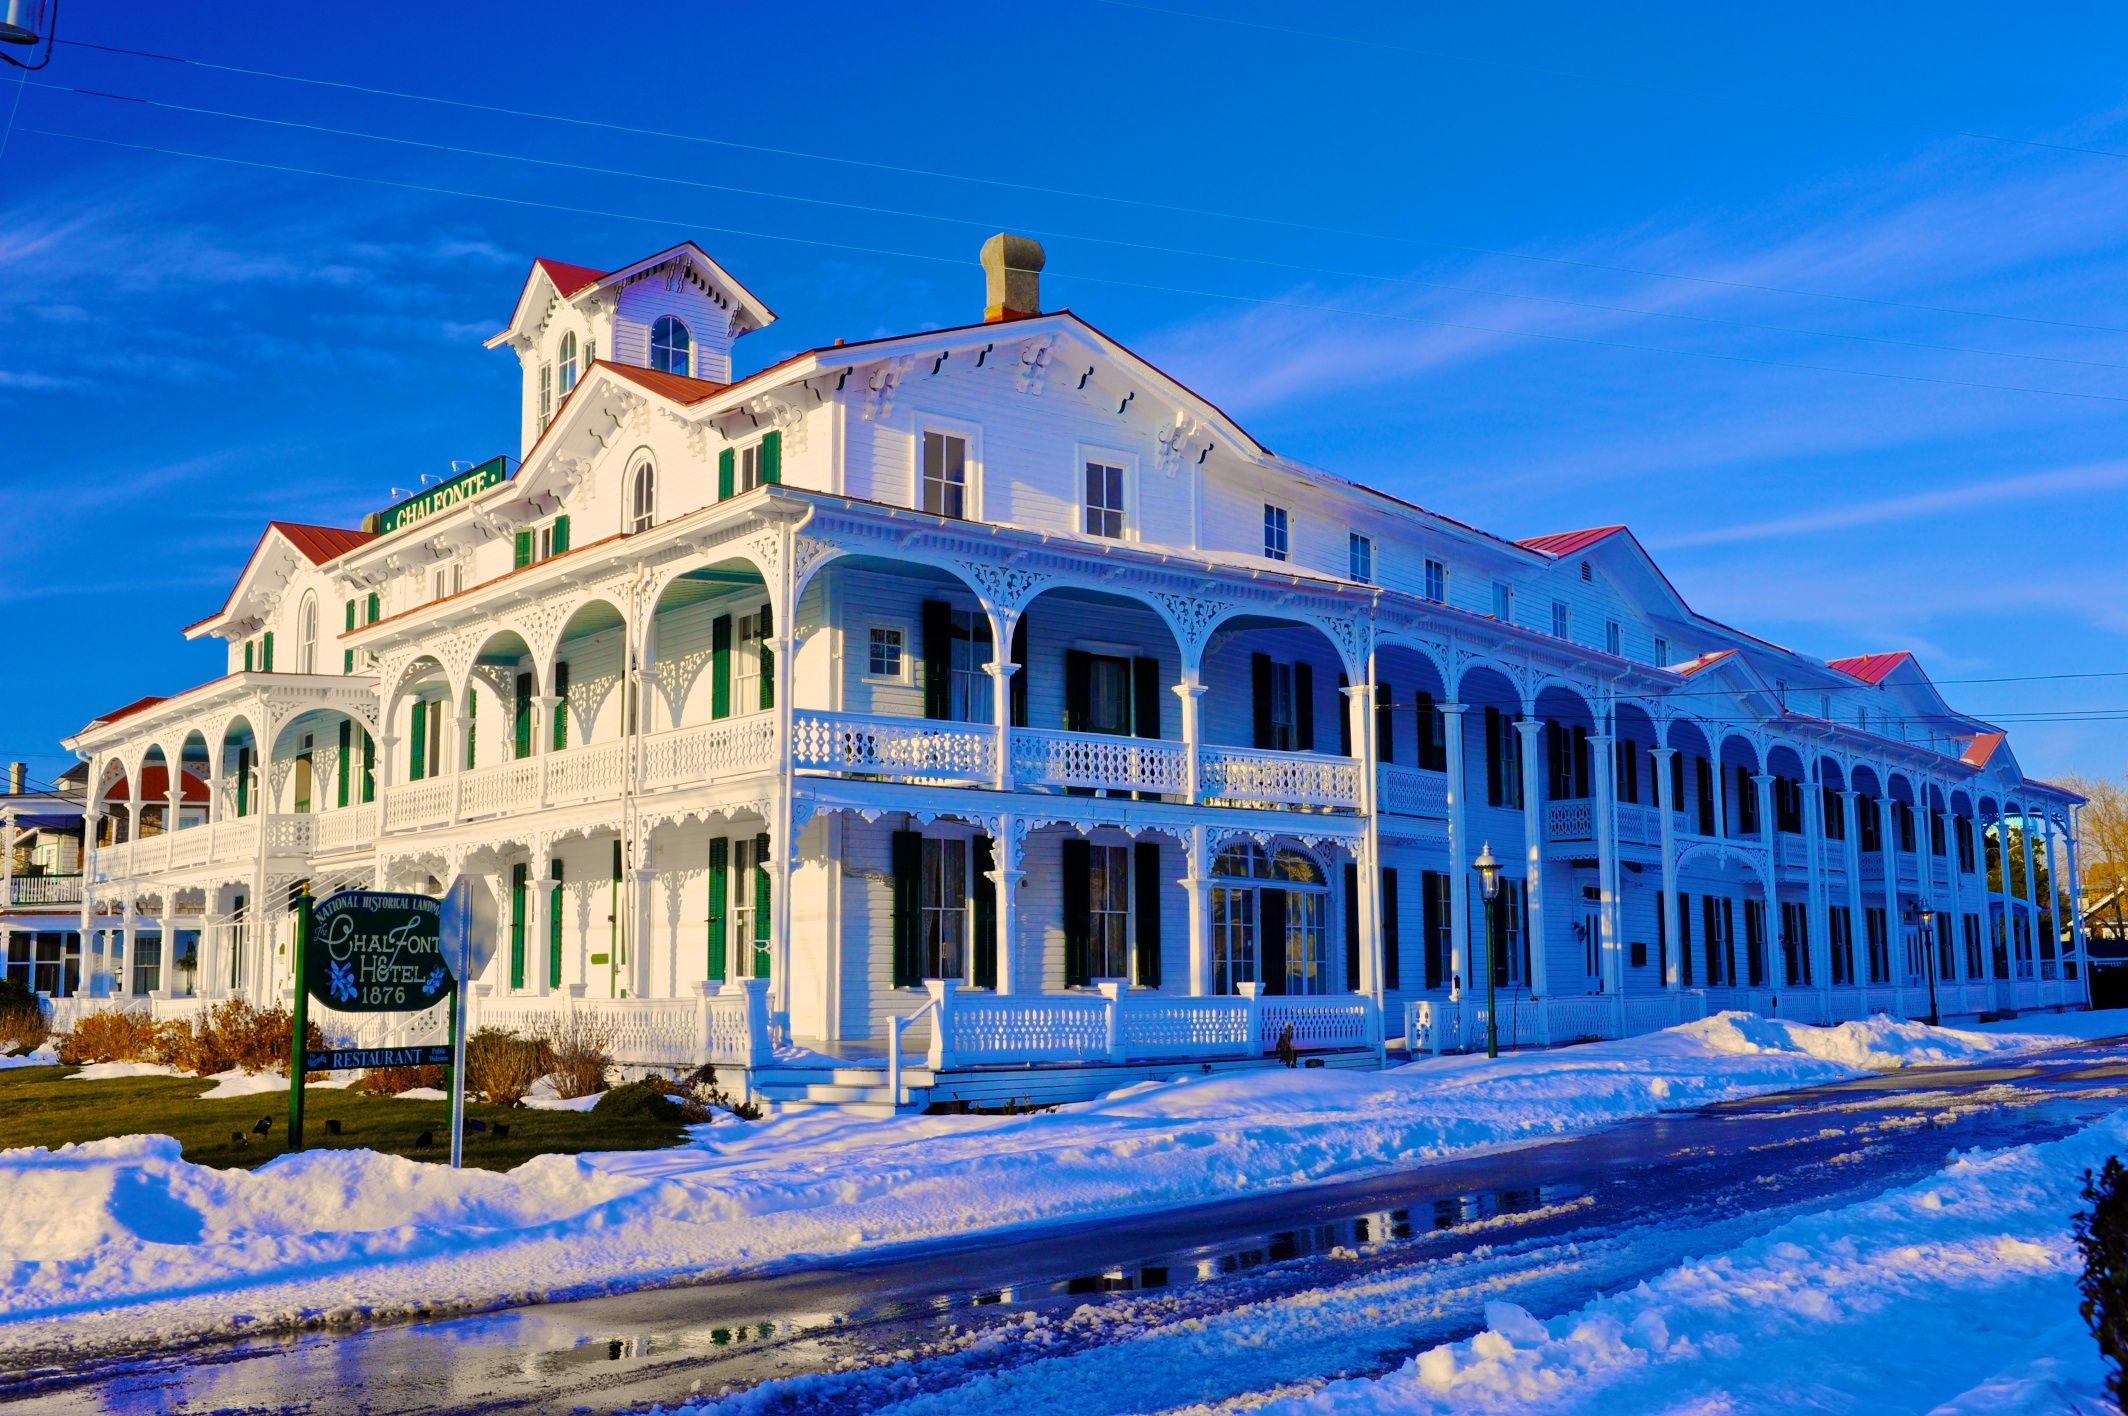 Cape May Hotels >> Cape May S Chalfonte Hotel In The Snow Winter Cape May